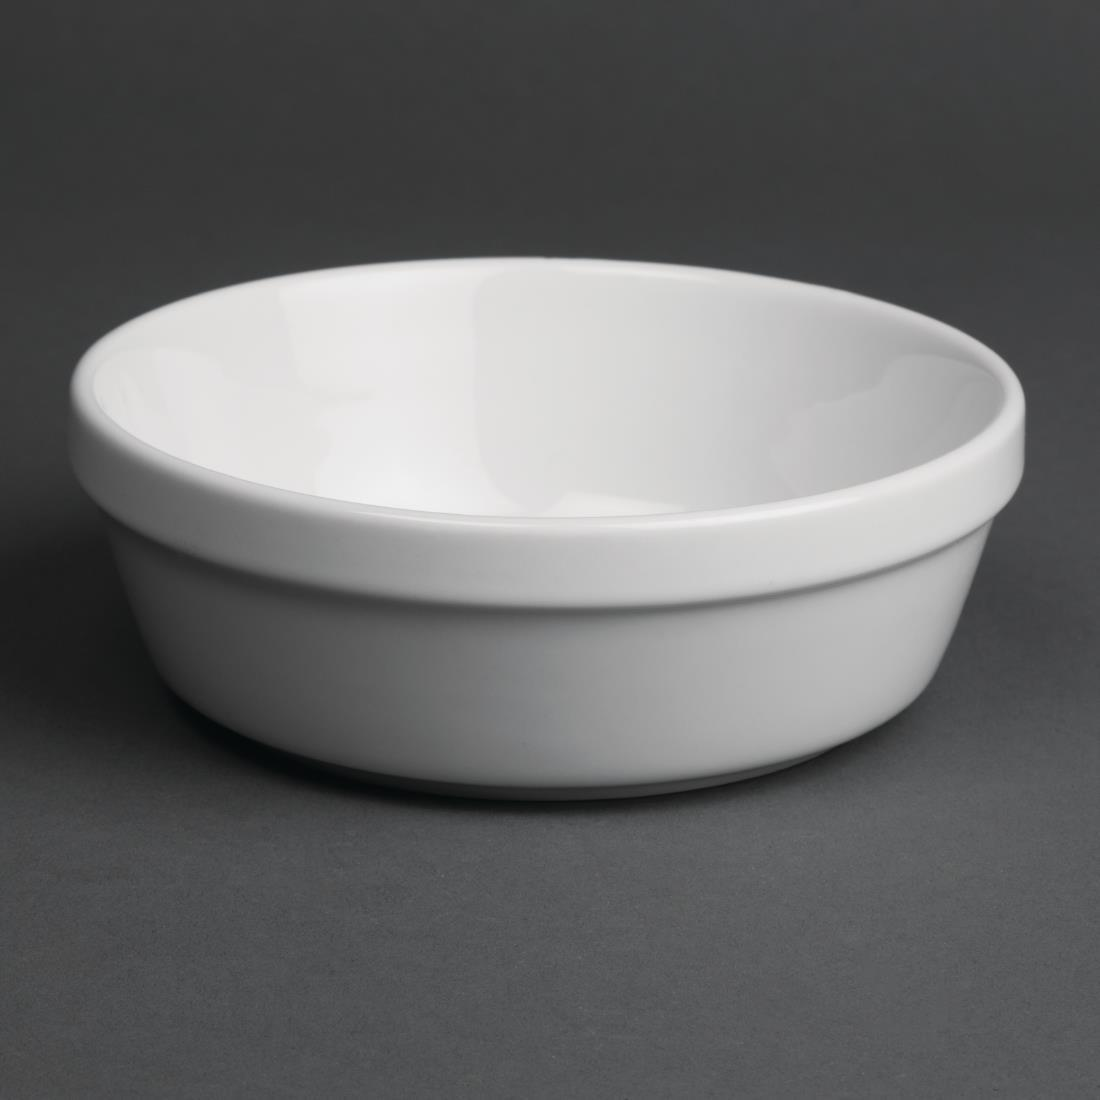 Olympia Whiteware Round Pie Bowls 137mm